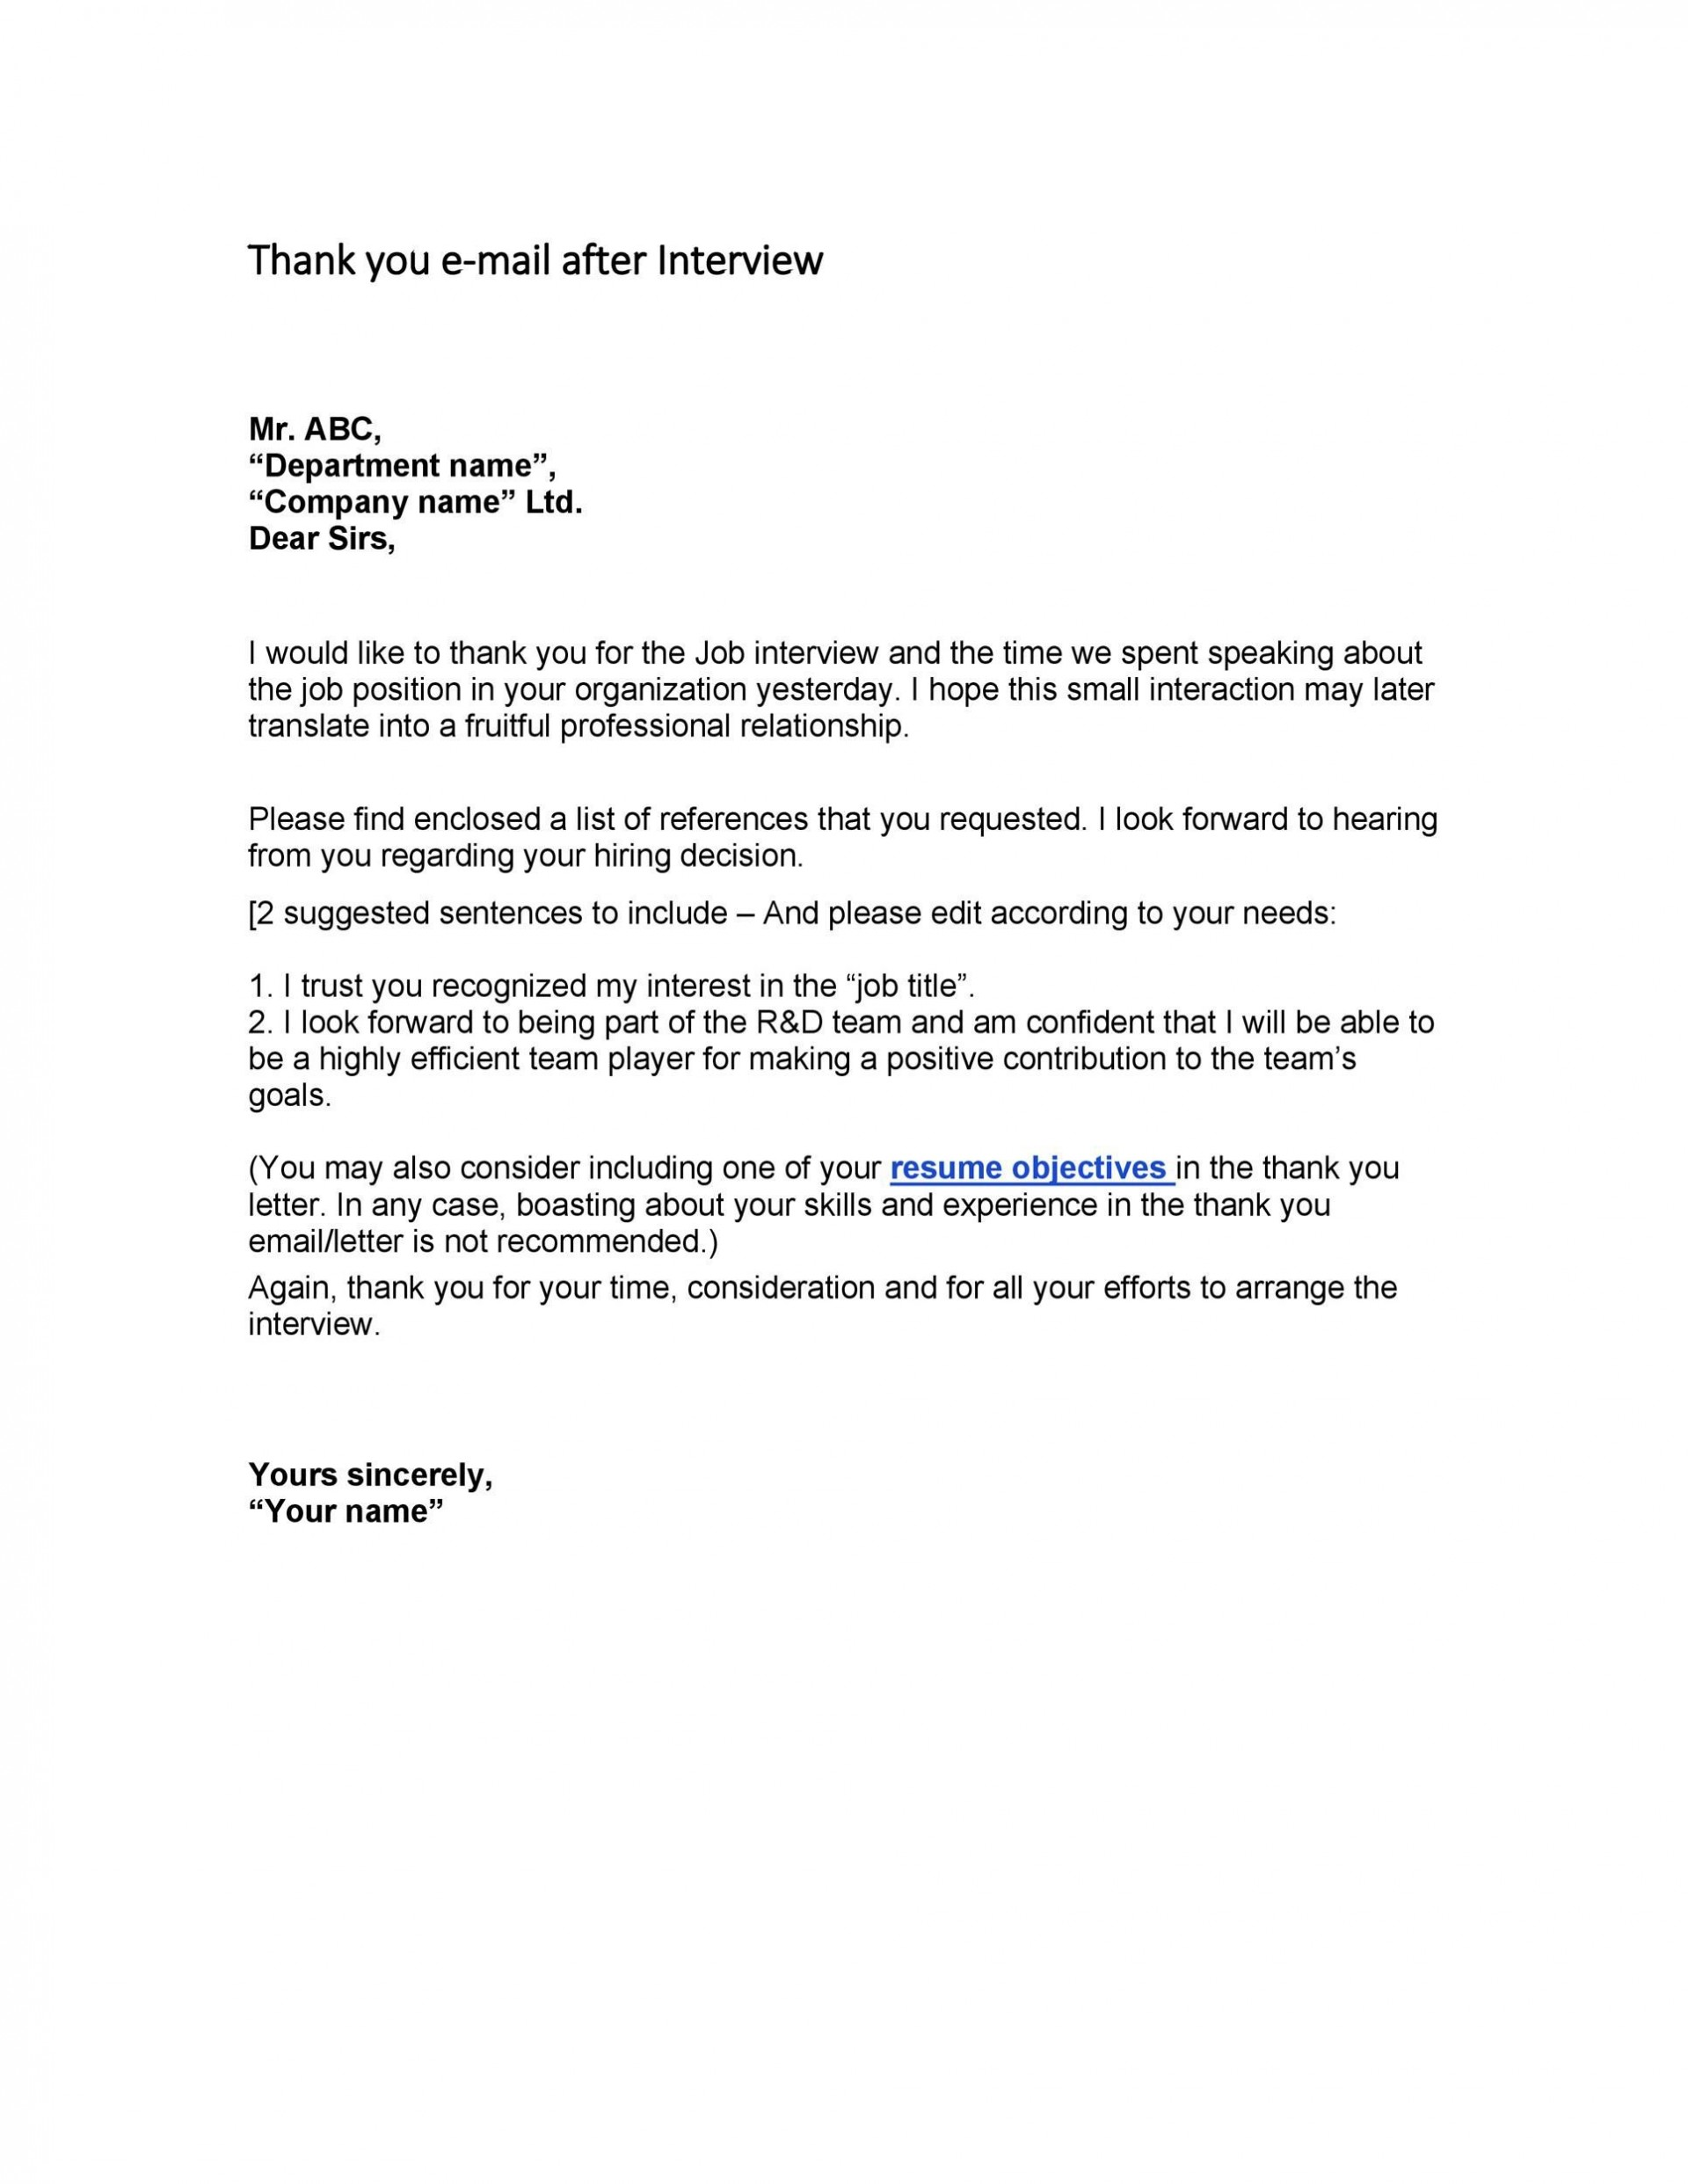 007 Excellent Follow Up Letter After Interview Photo  Handwritten Note Email Sample For Job Template1920